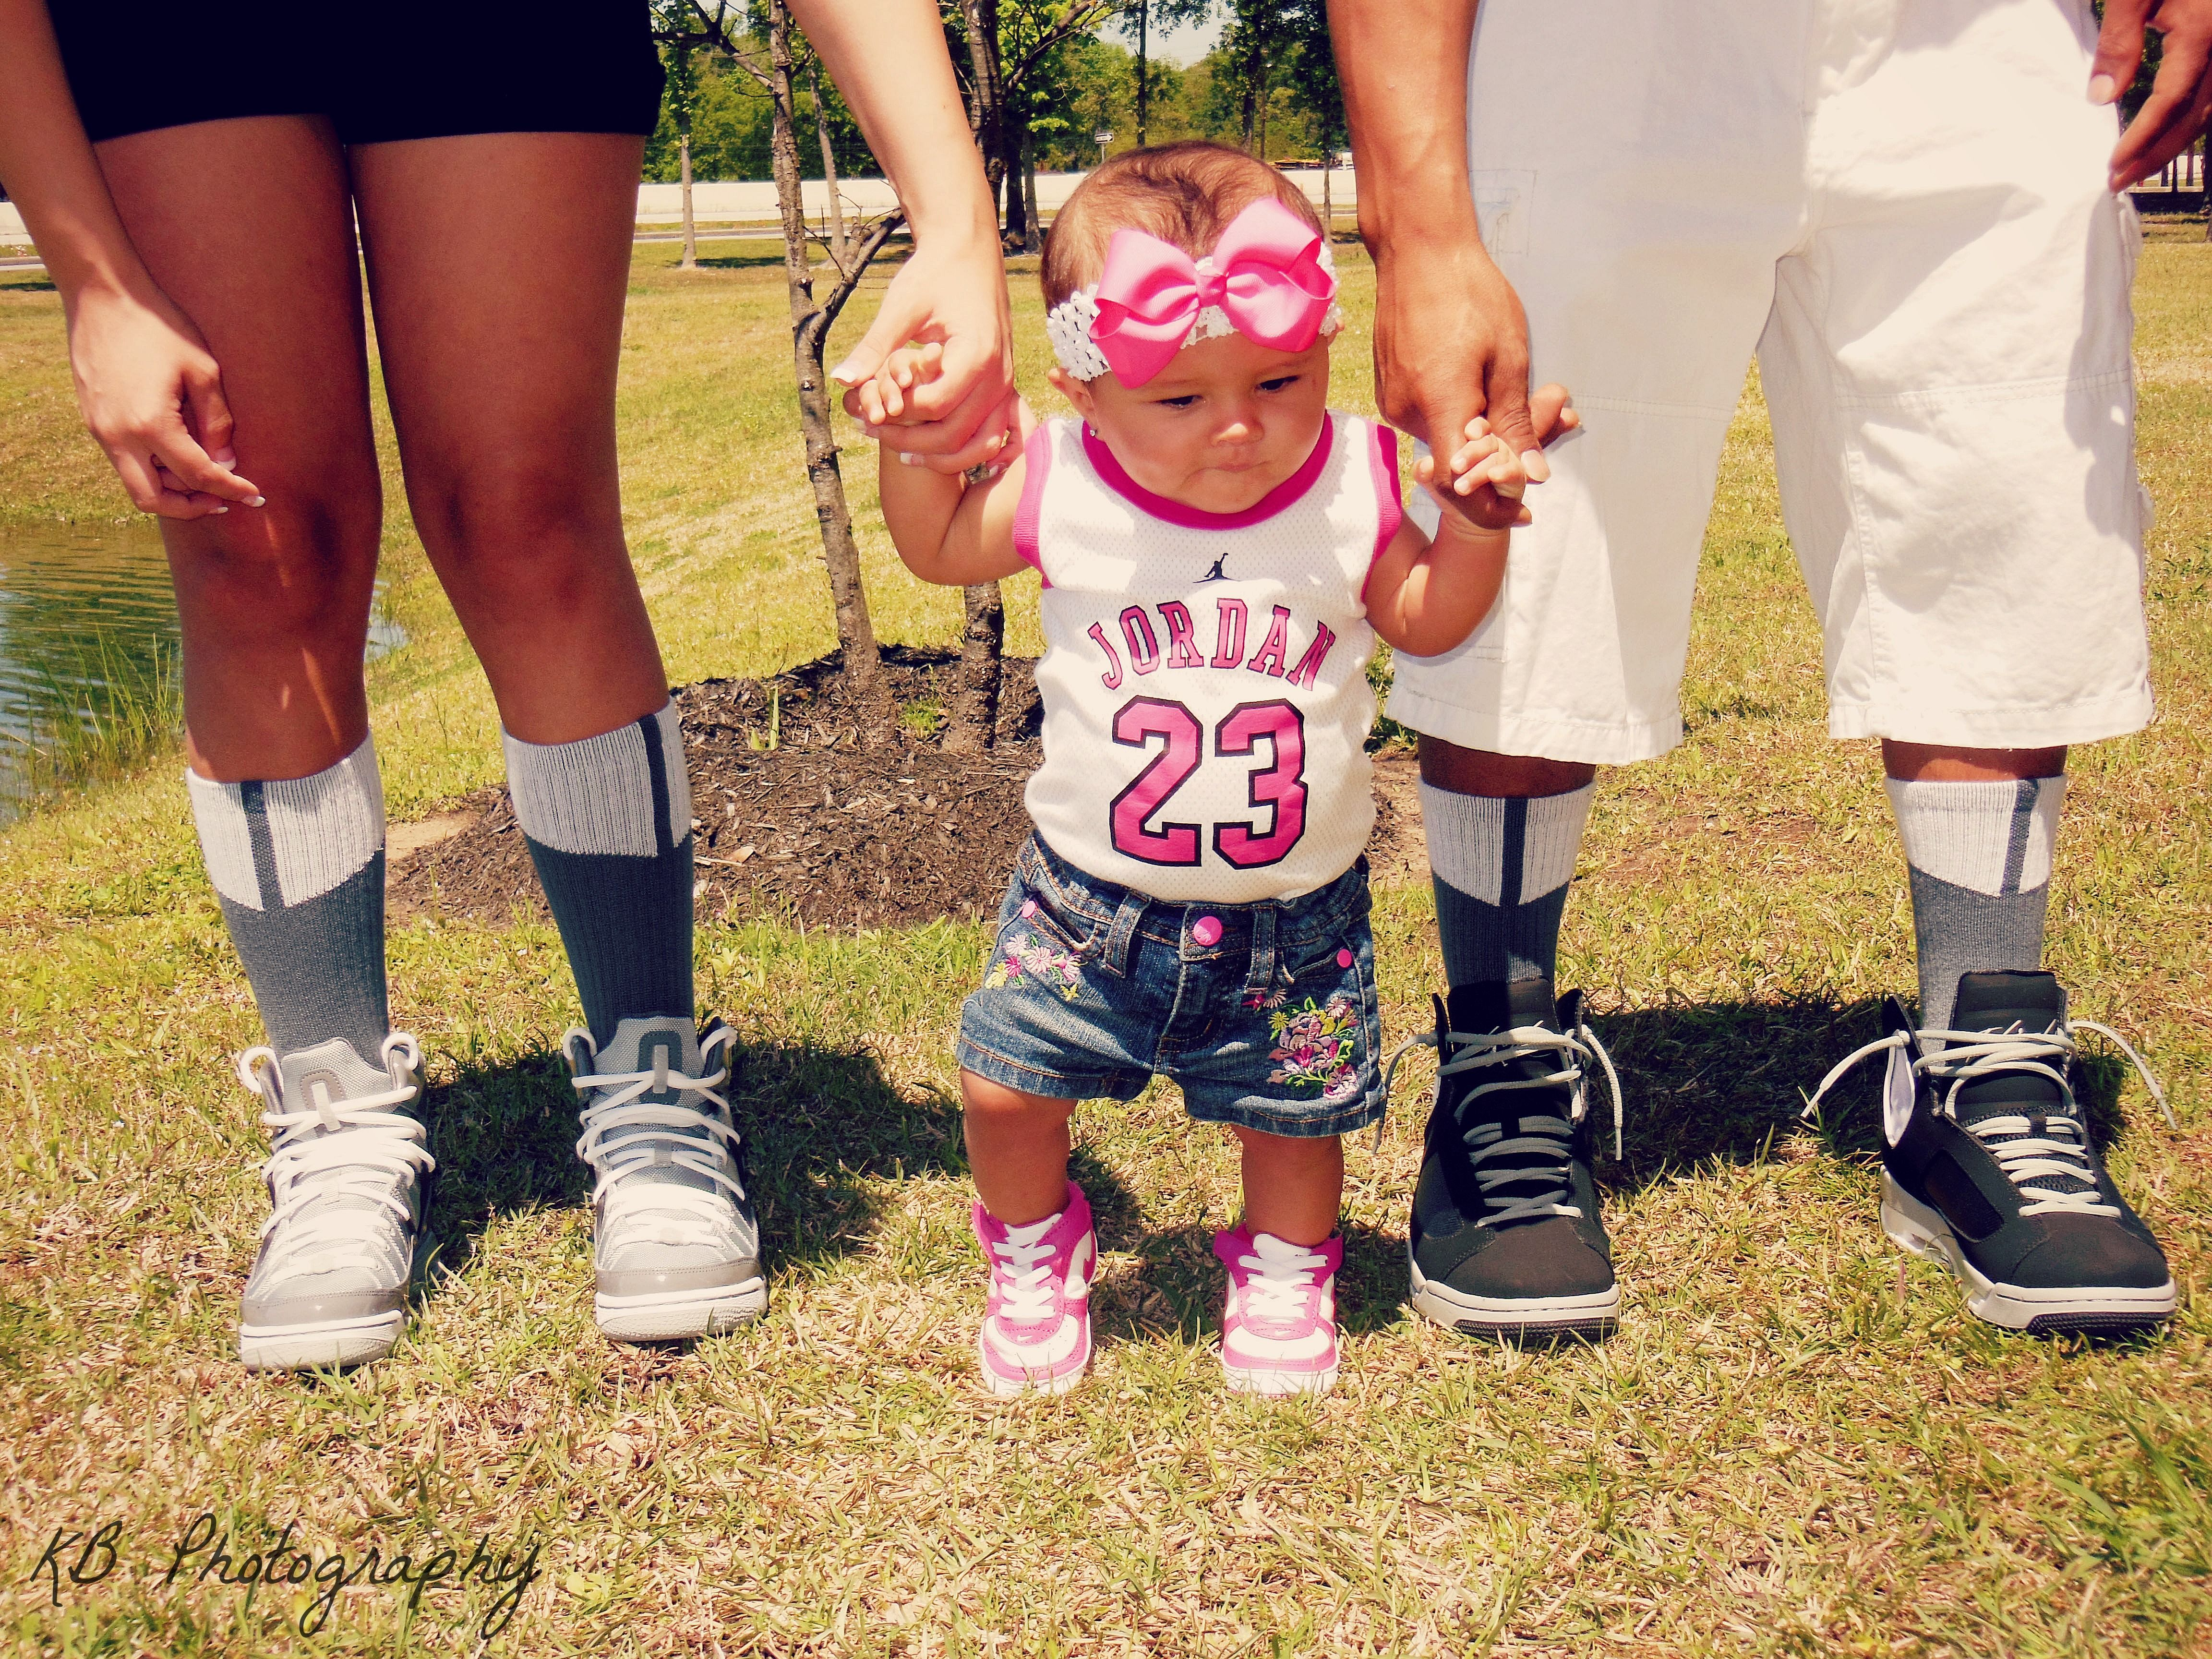 Fashion week Jordans Family tumblr pictures for lady